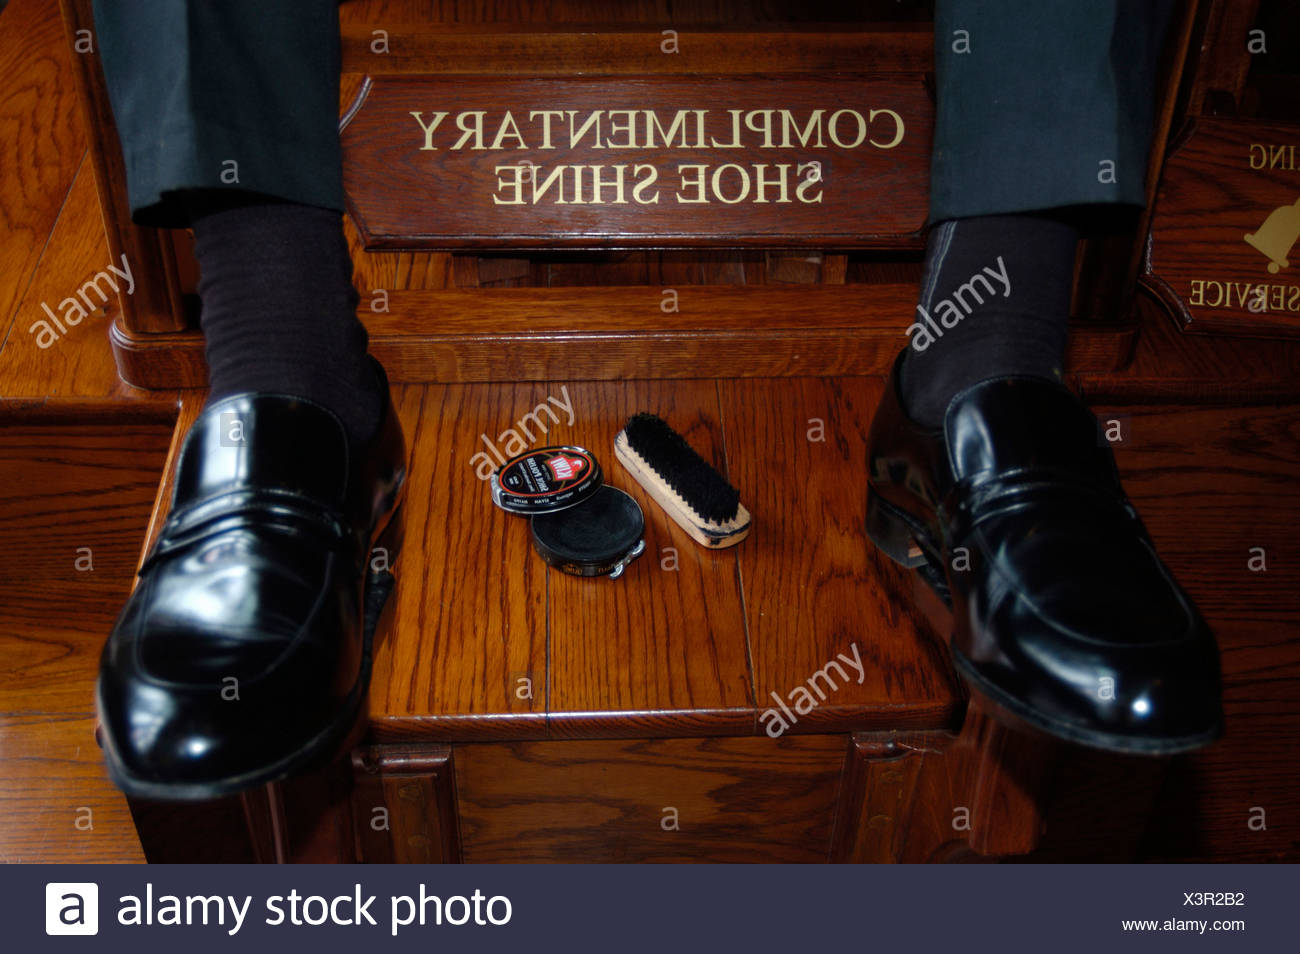 black brush care clean cream customer Hotel leather shoes polish services shoes clean shoeshine boys Stock Photo